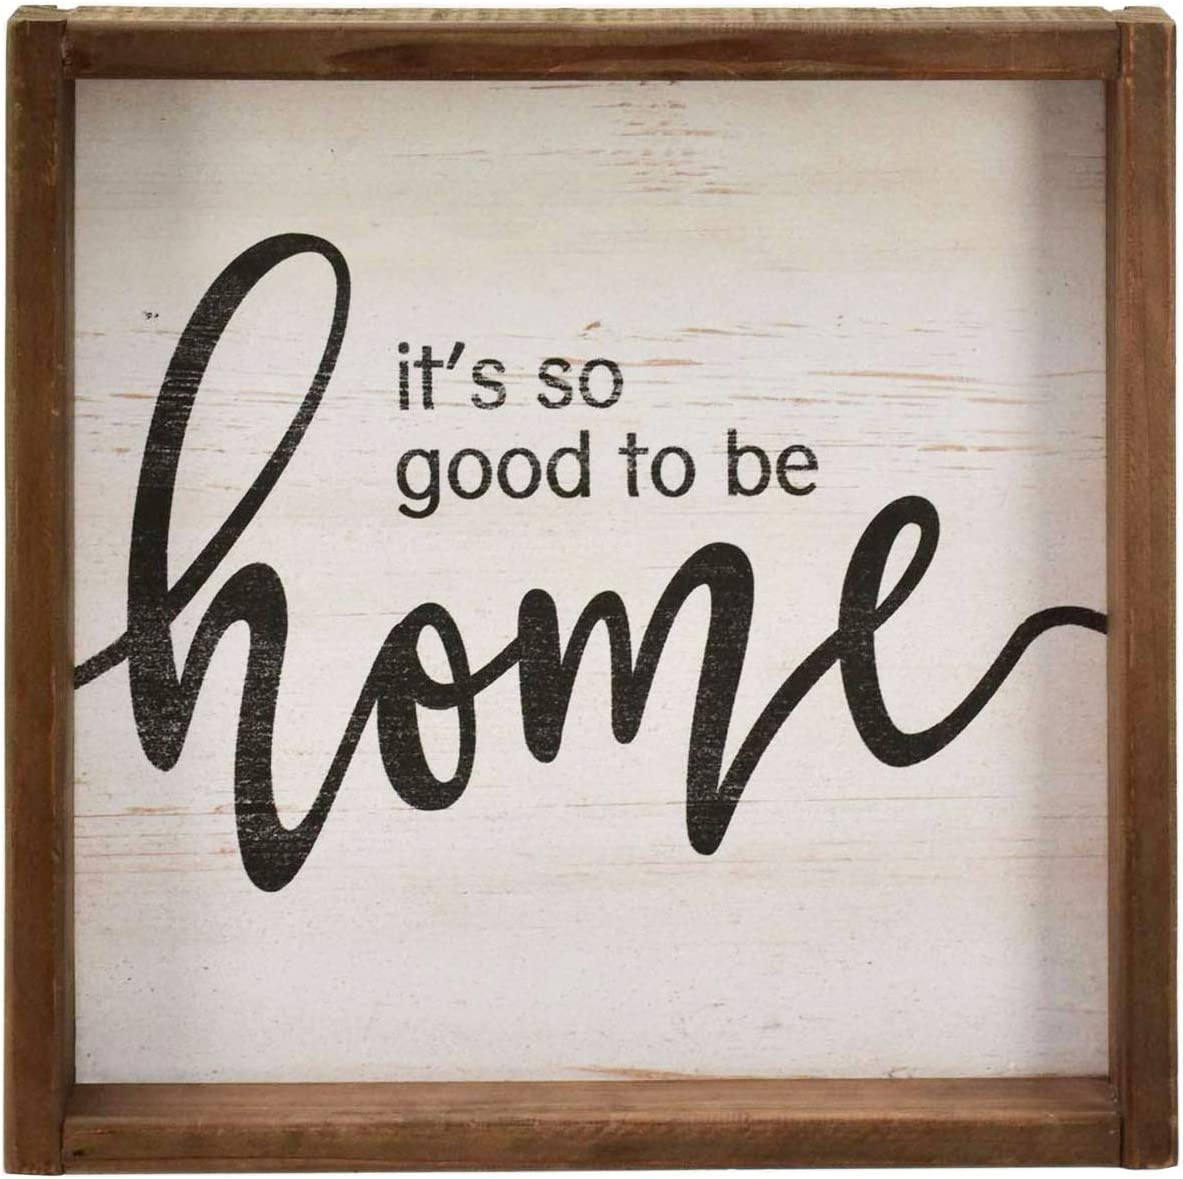 Vintage Wood Frame Home Sign with Inspirational Sentiment - It's So Good to Be Home, Farmhouse Rustic Wood Decor for Living Room Bedroom, Square, 11.8 Inch